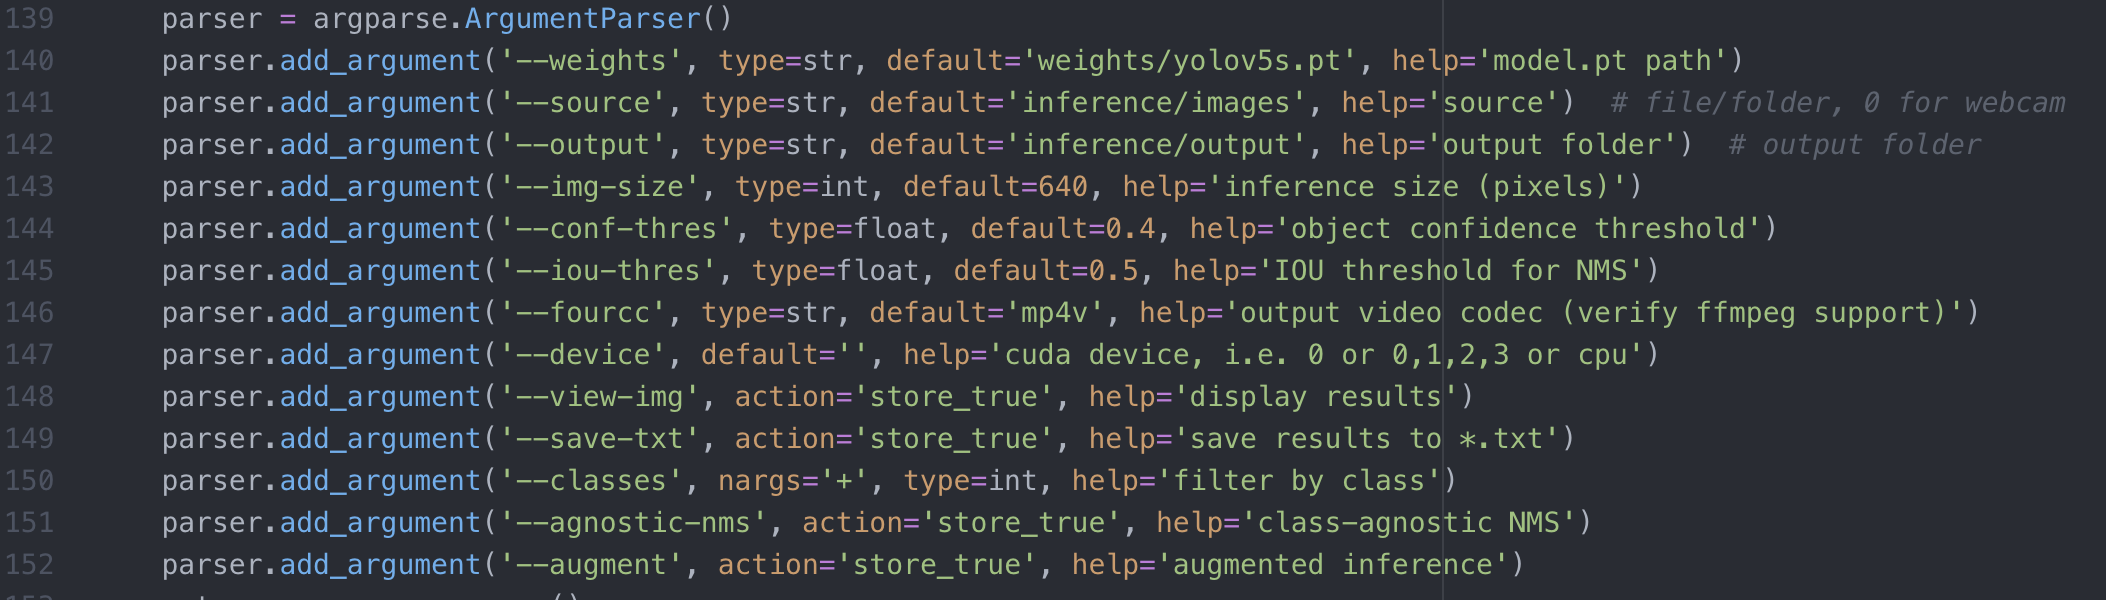 Logo detection using Yolo v5 and Pytorch